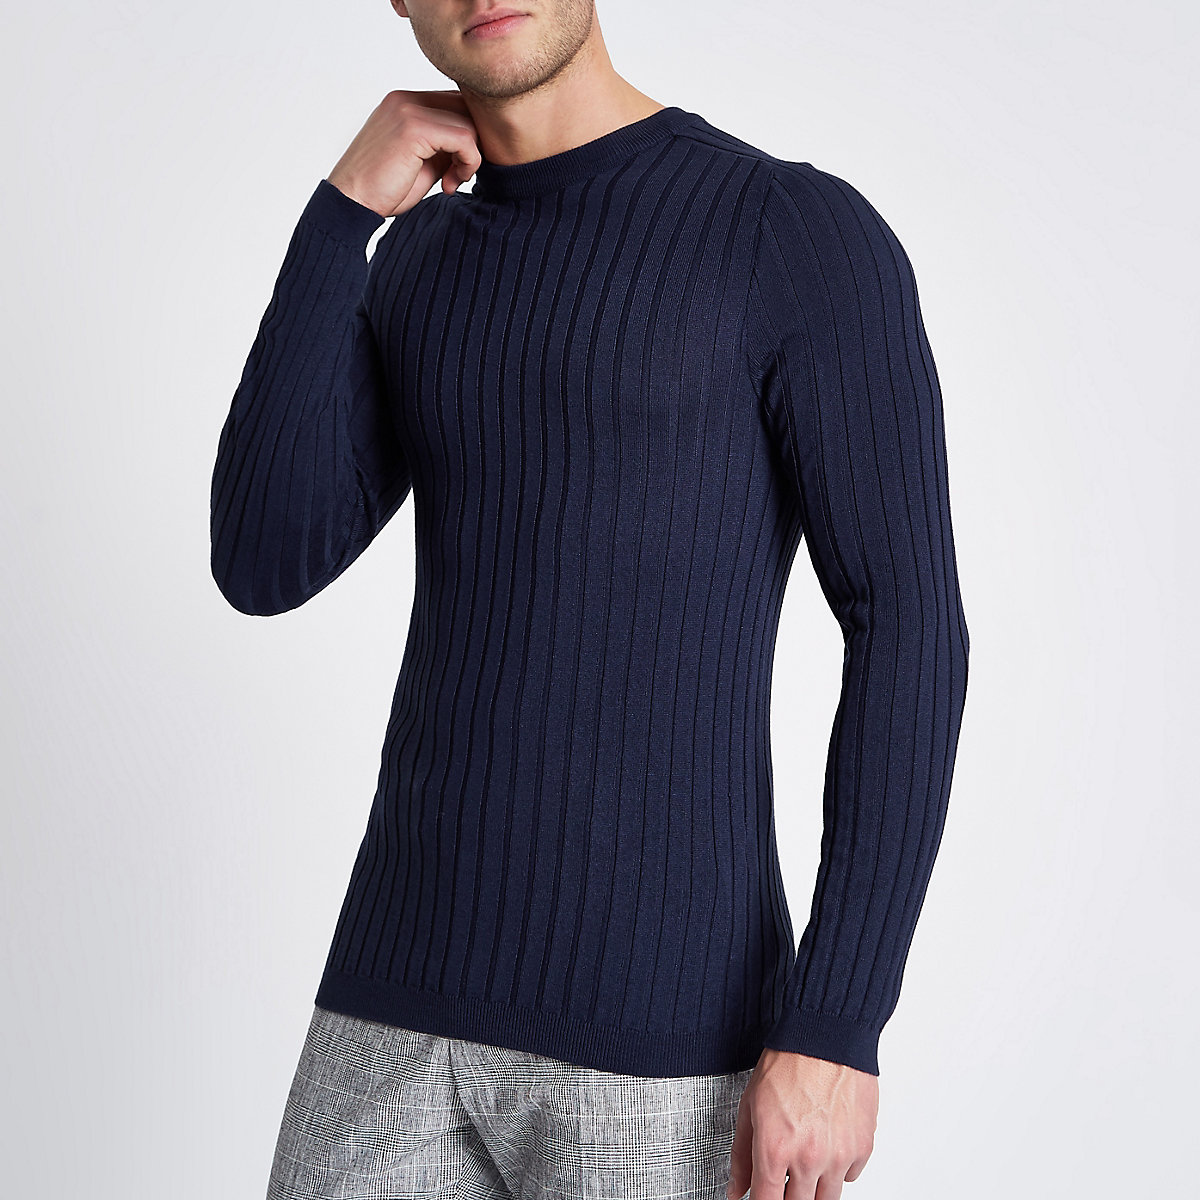 Blue rib knit muscle fit crew neck sweater